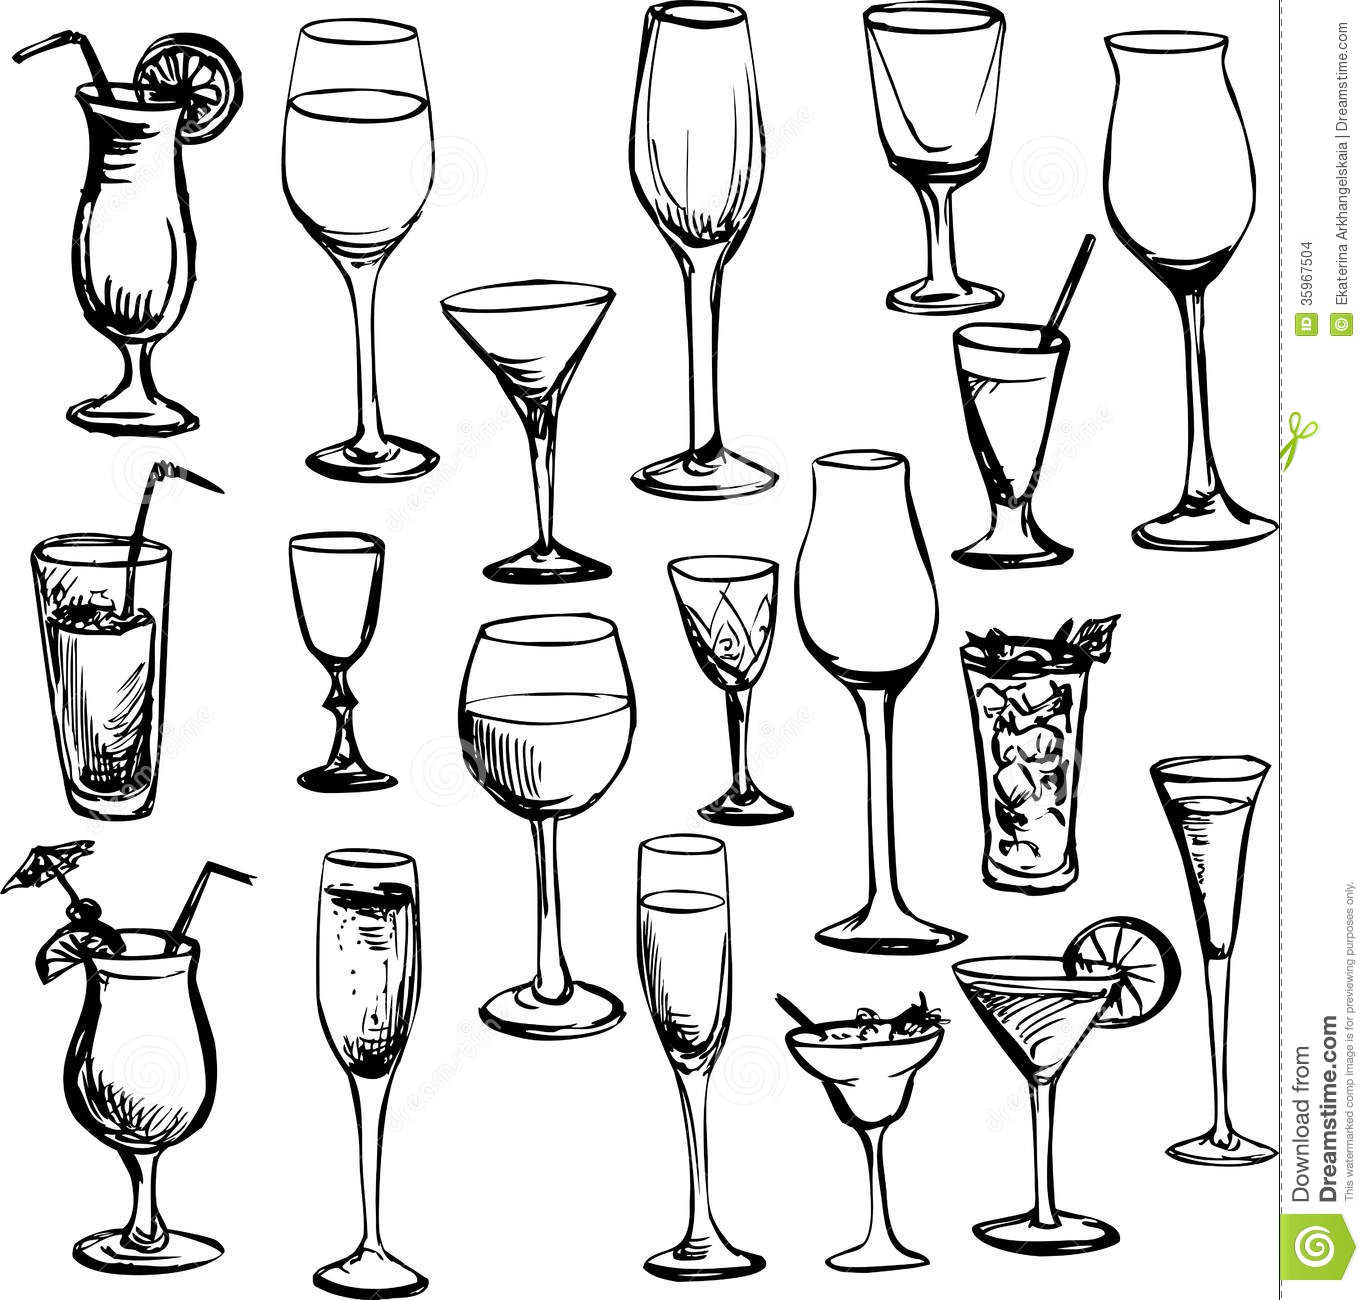 Set of ink drawing wineglass, vector illustration.